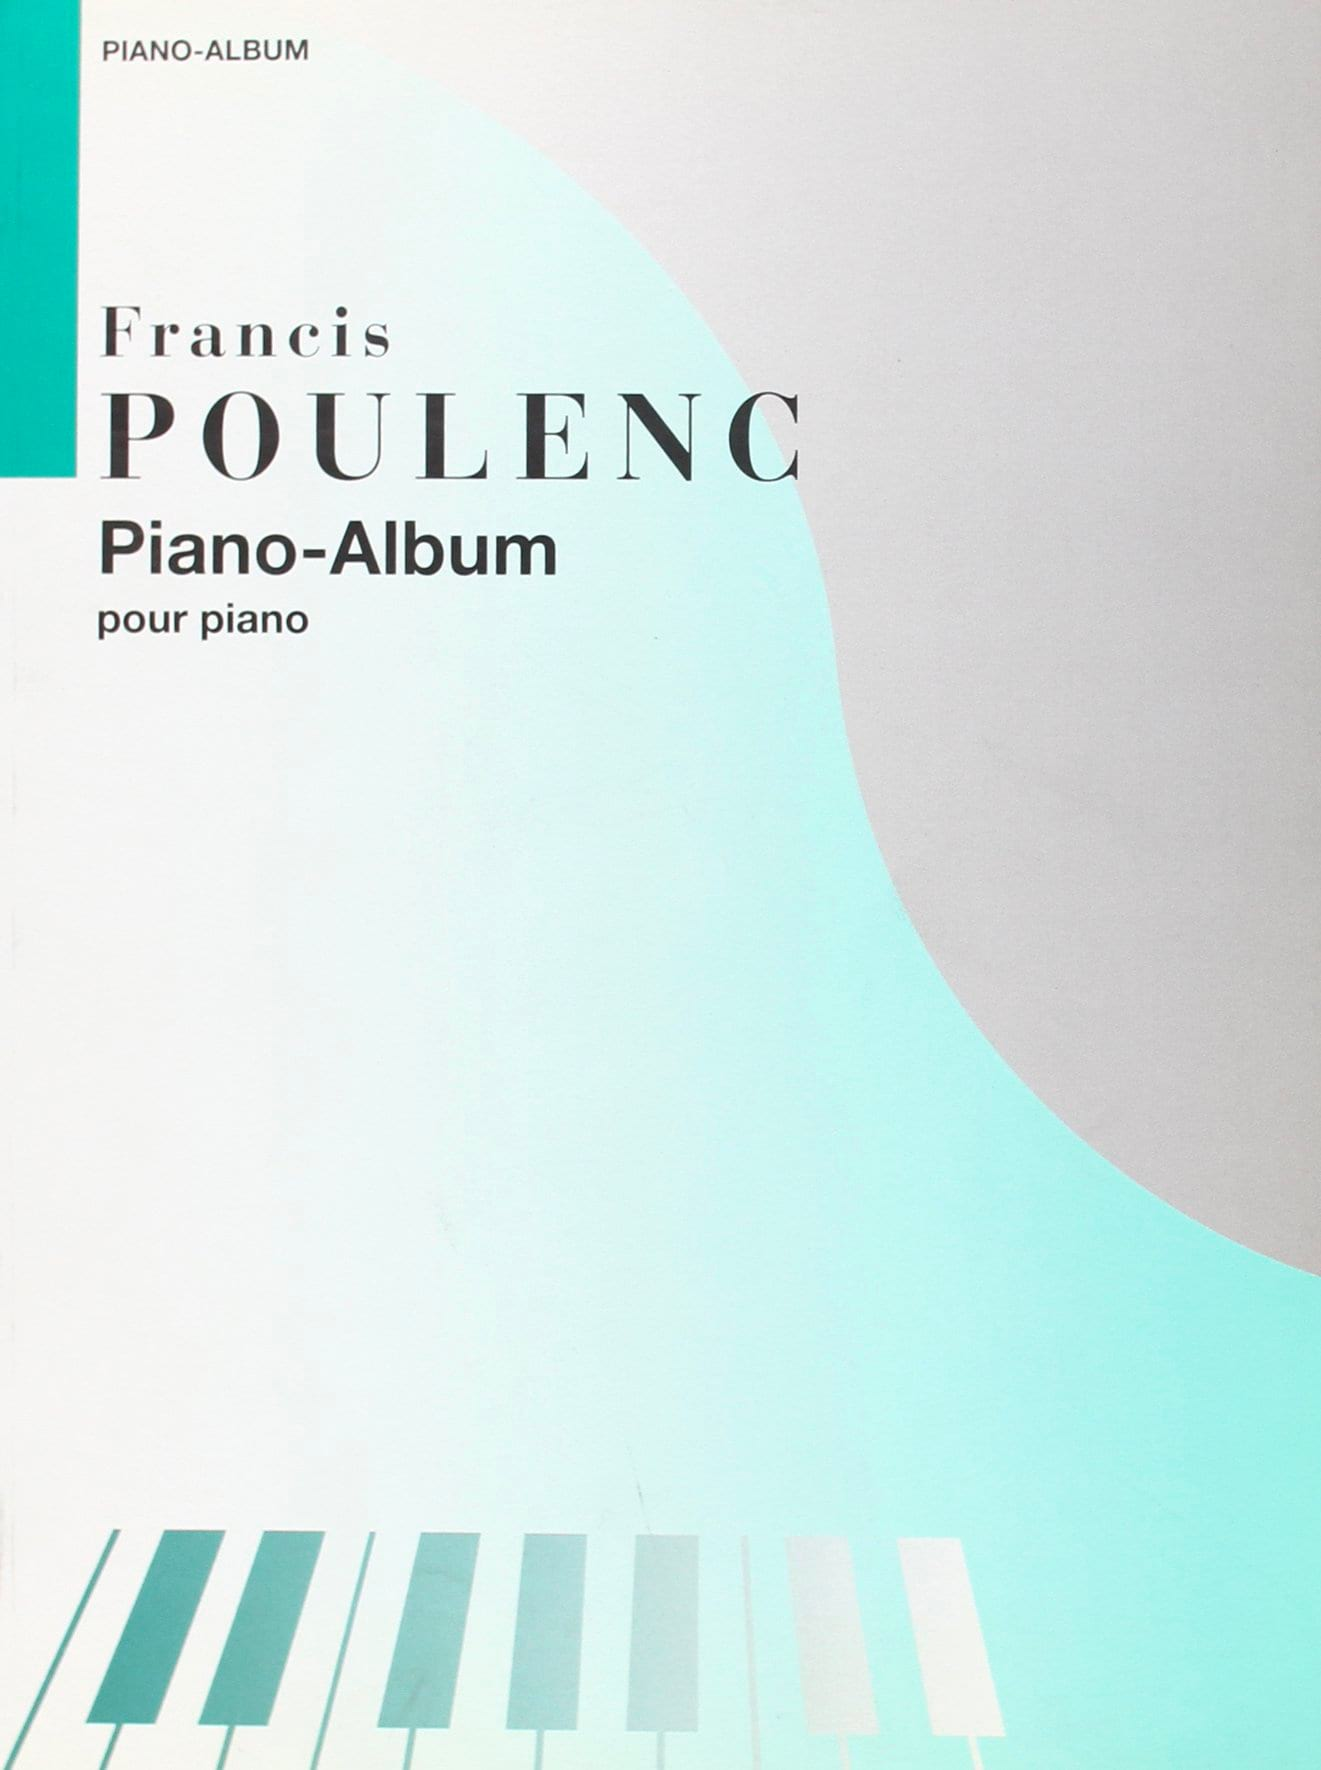 Francis Poulenc - Album di pianoforte - Partition - di-arezzo.it